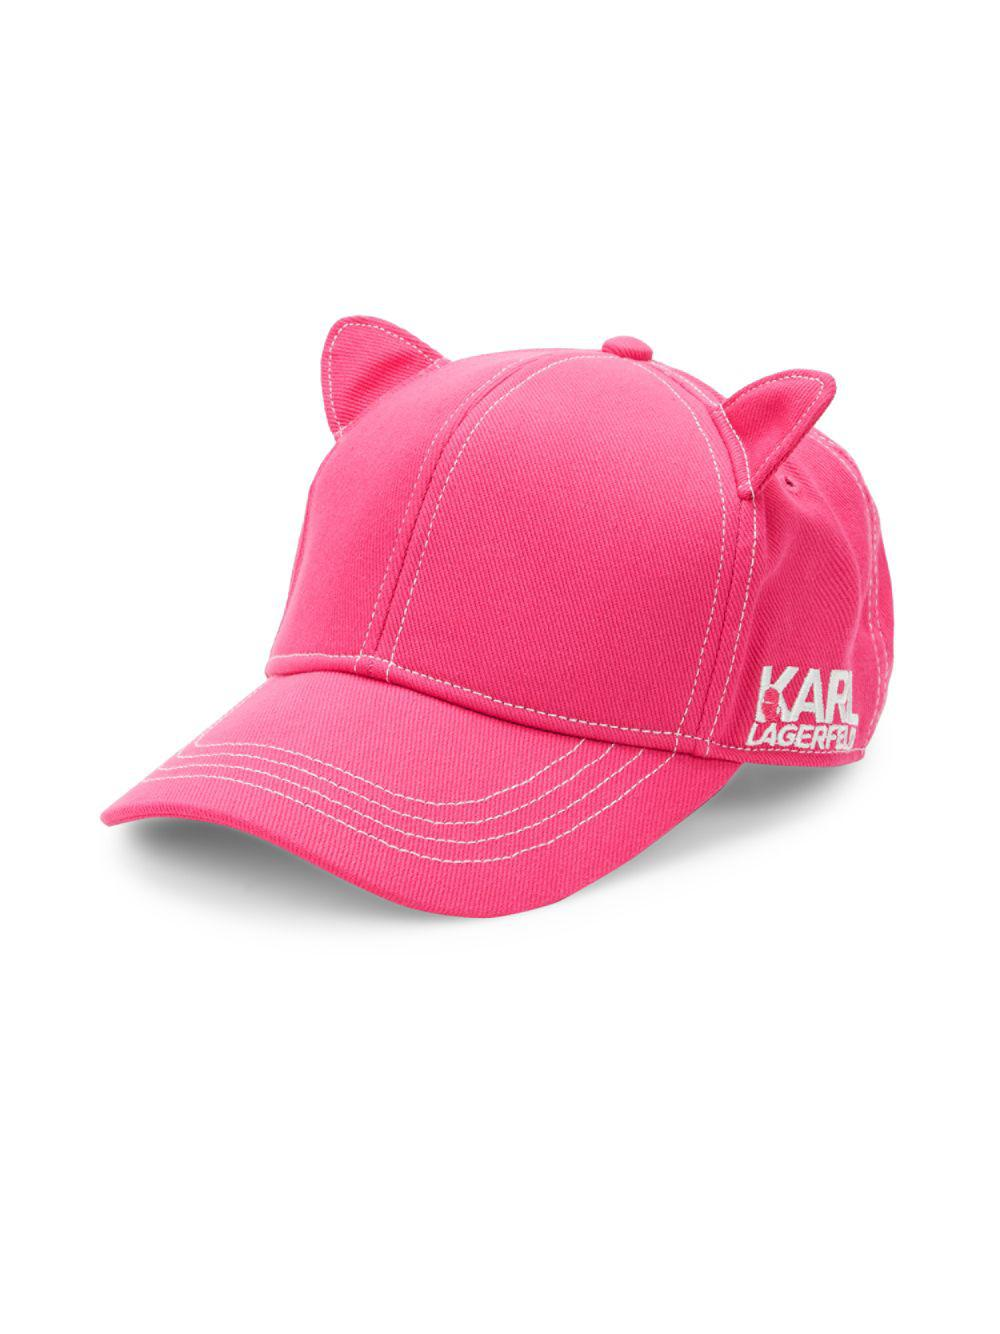 593001c0da4 Lyst - Karl Lagerfeld Cat Ear Baseball Cap in Pink - Save 50%